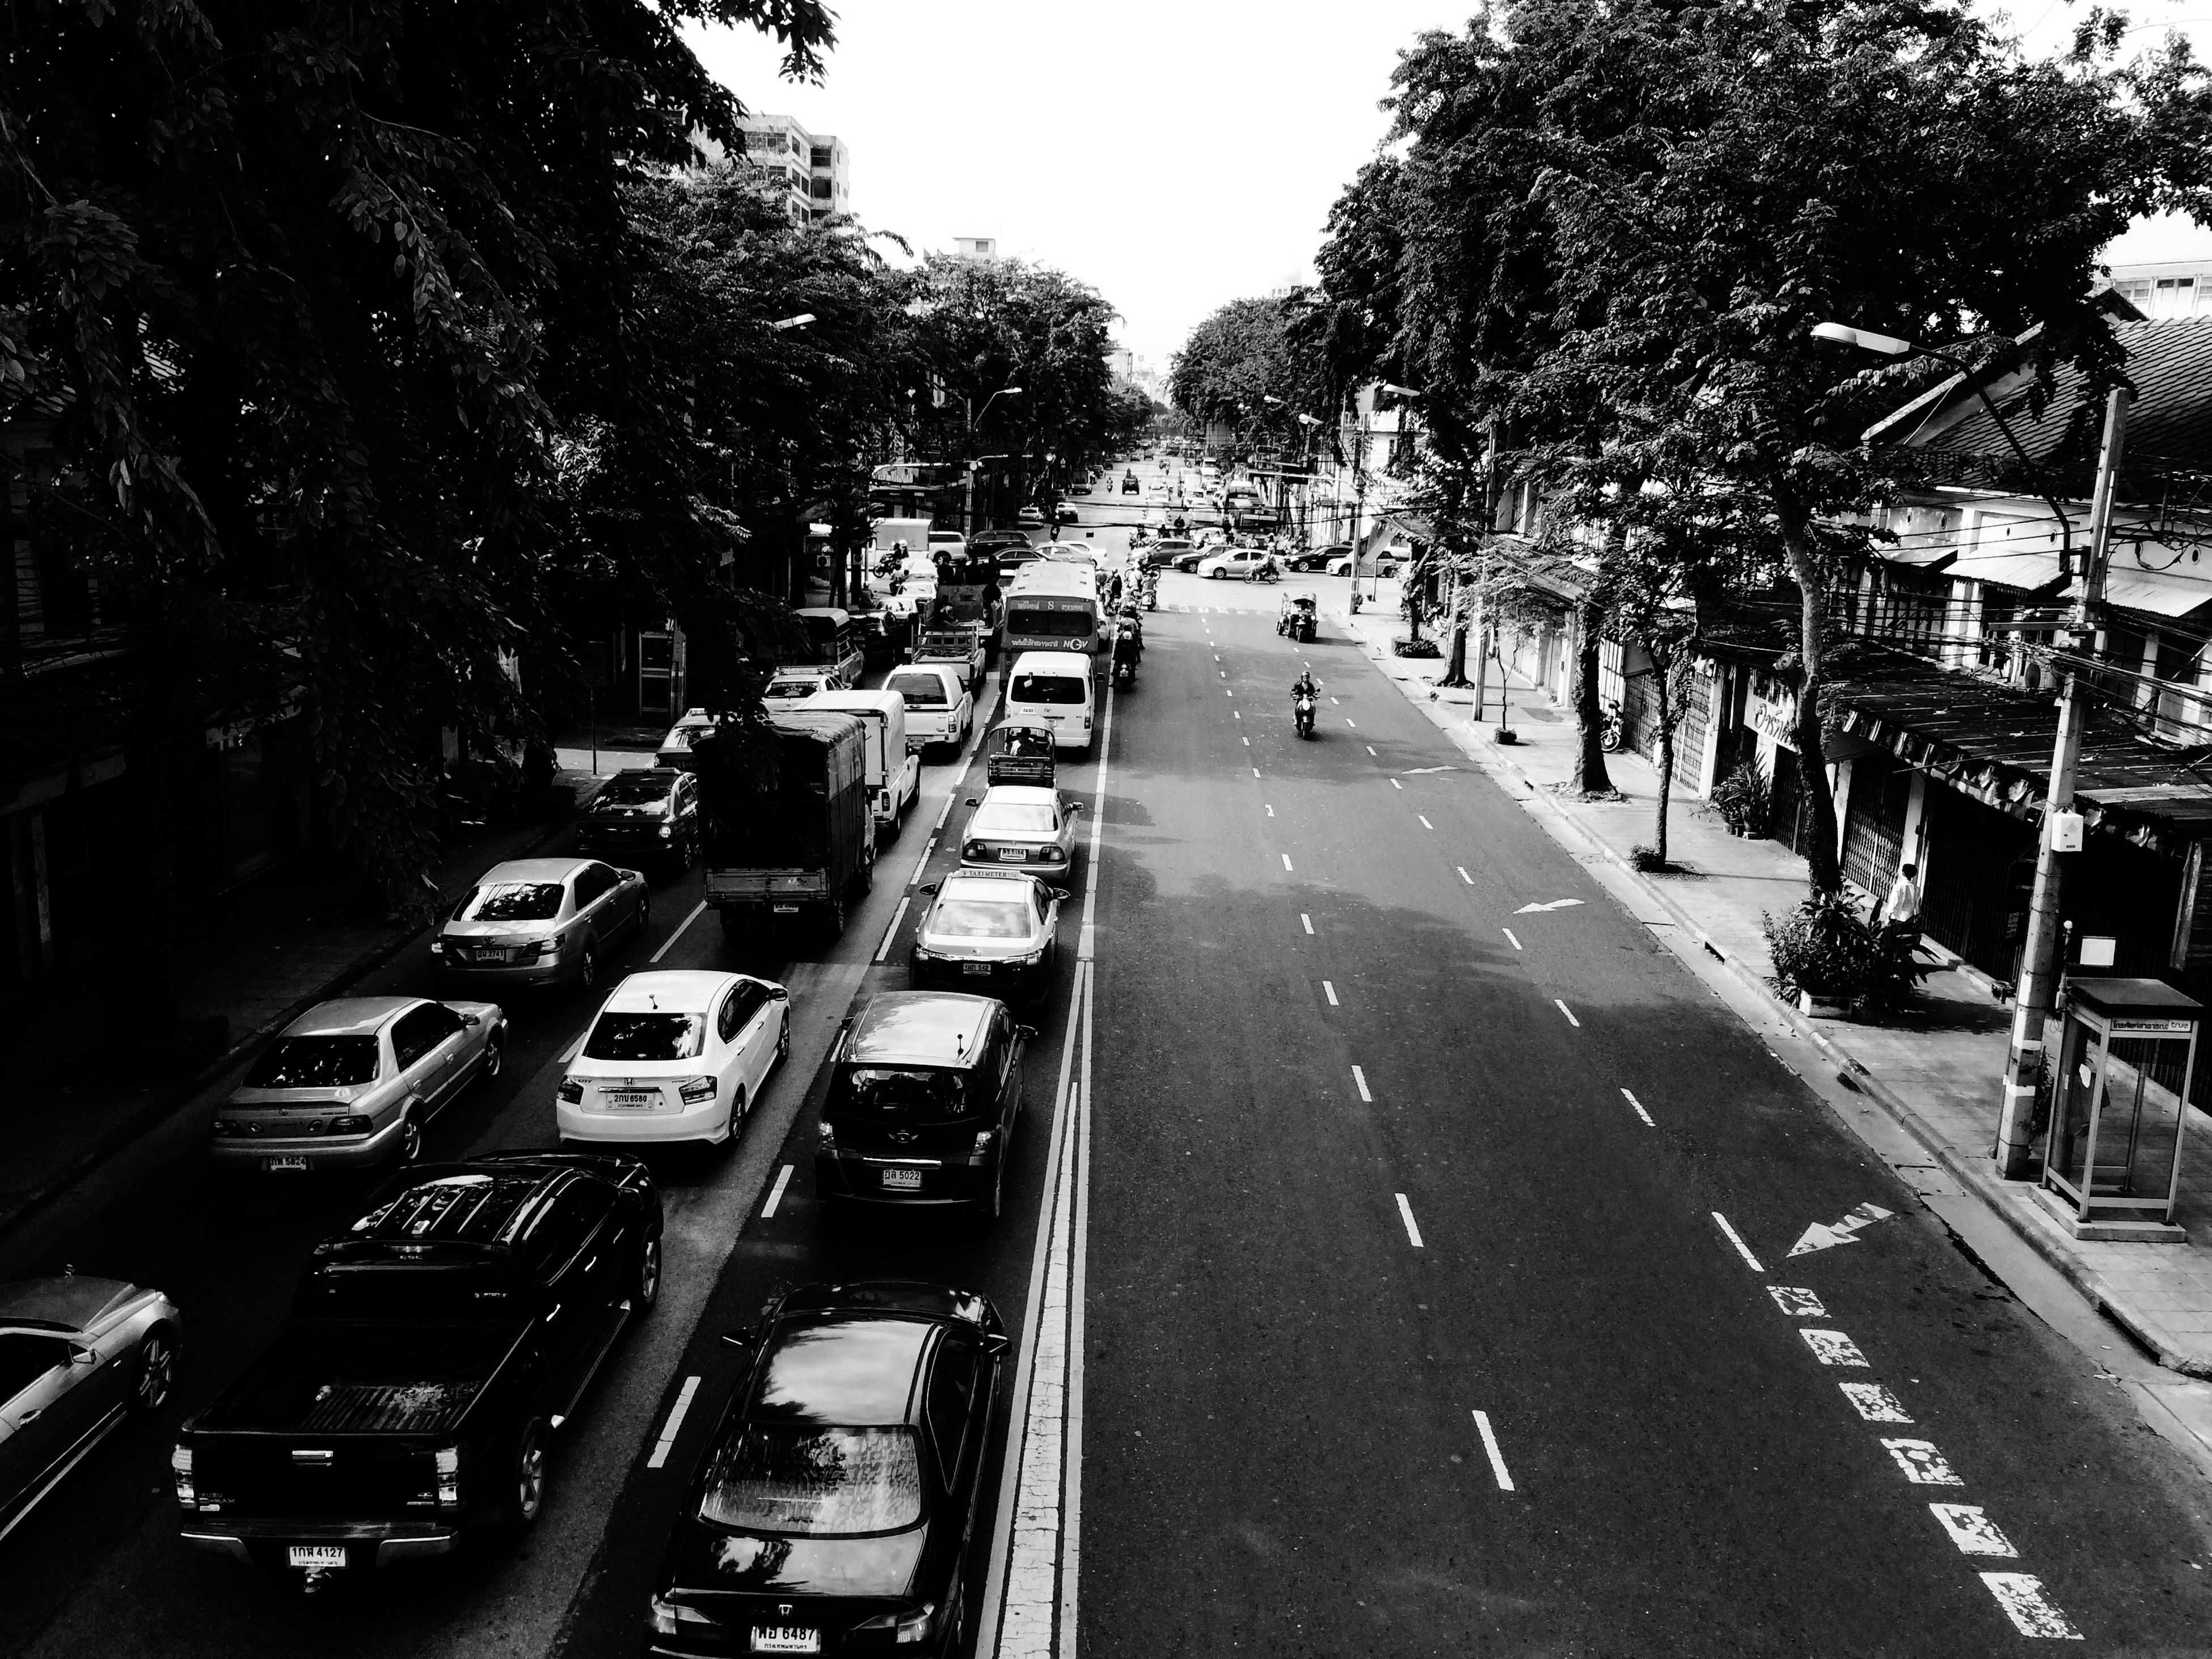 transportation, land vehicle, mode of transport, car, tree, street, the way forward, road, diminishing perspective, incidental people, city, vanishing point, stationary, city life, large group of people, in a row, road marking, parking, traffic